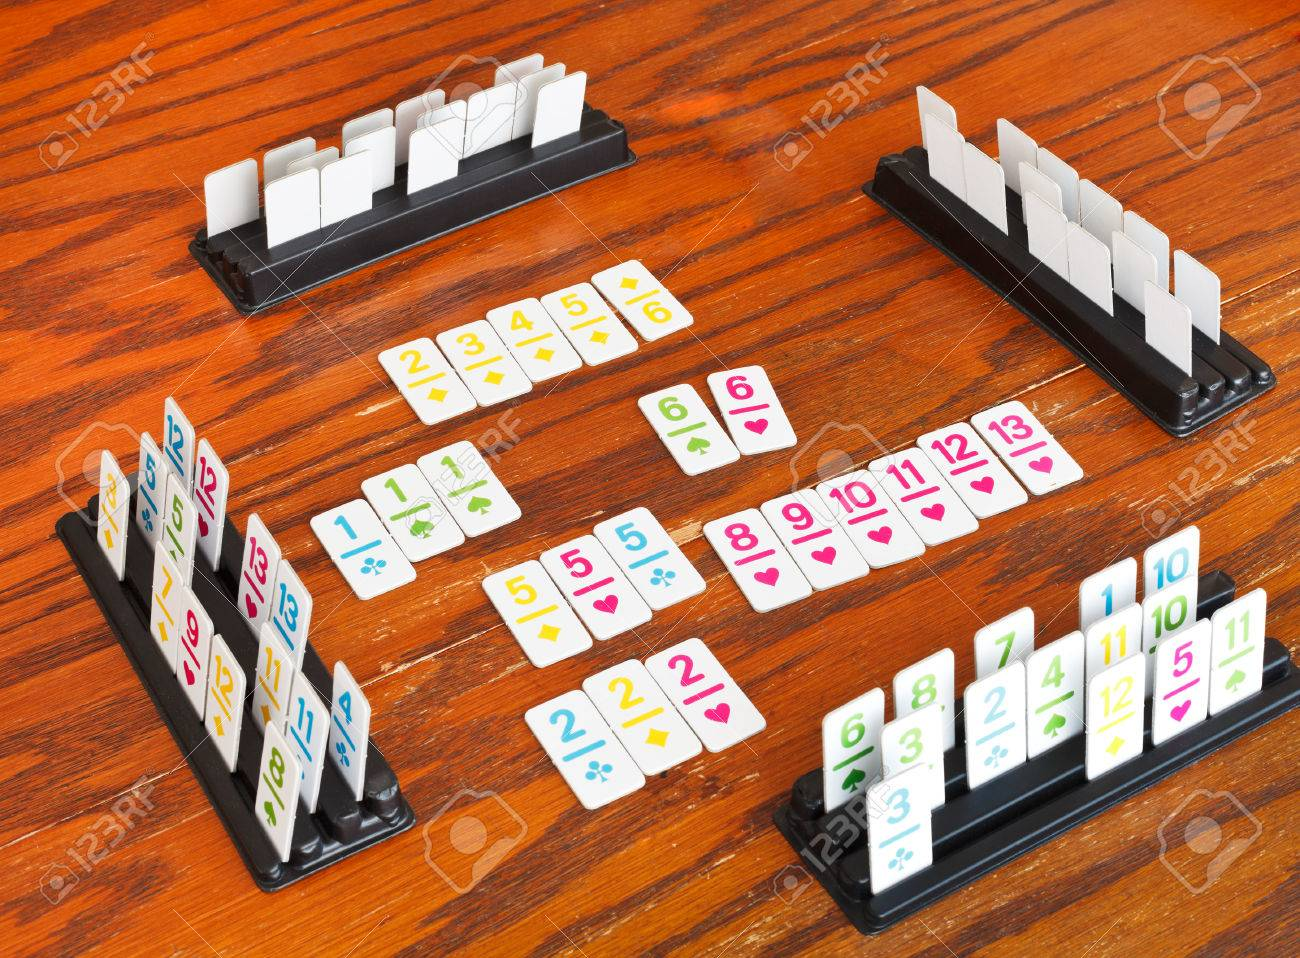 Charmant Playing Field Of Rummy Card Game On Wooden Table Stock Photo   26914093